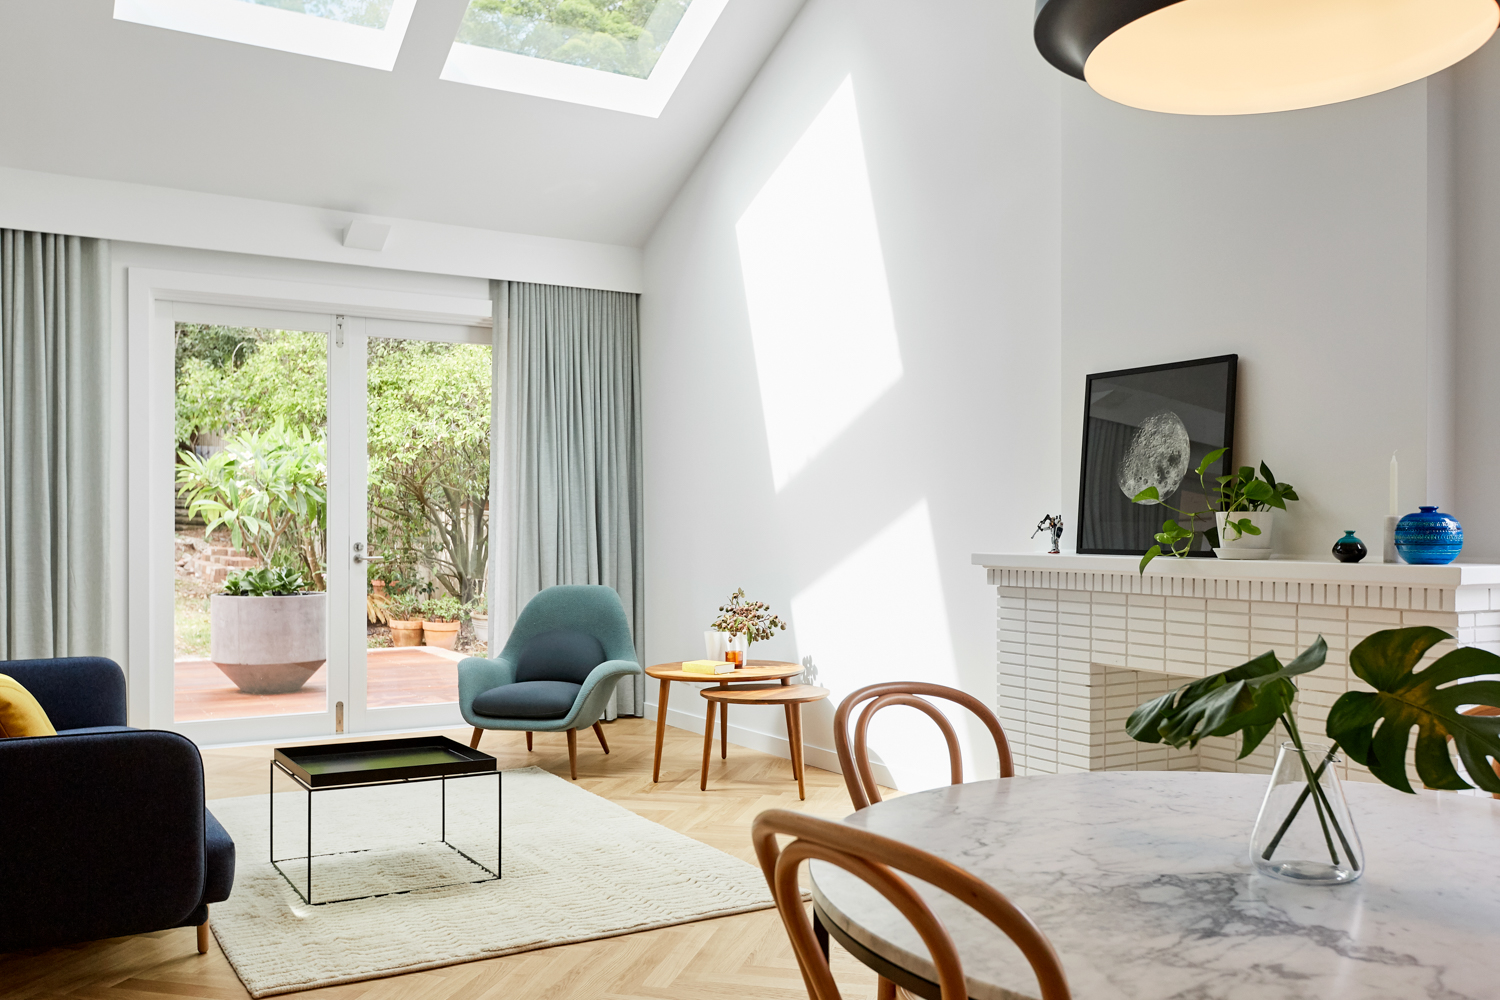 Living room with skylights above